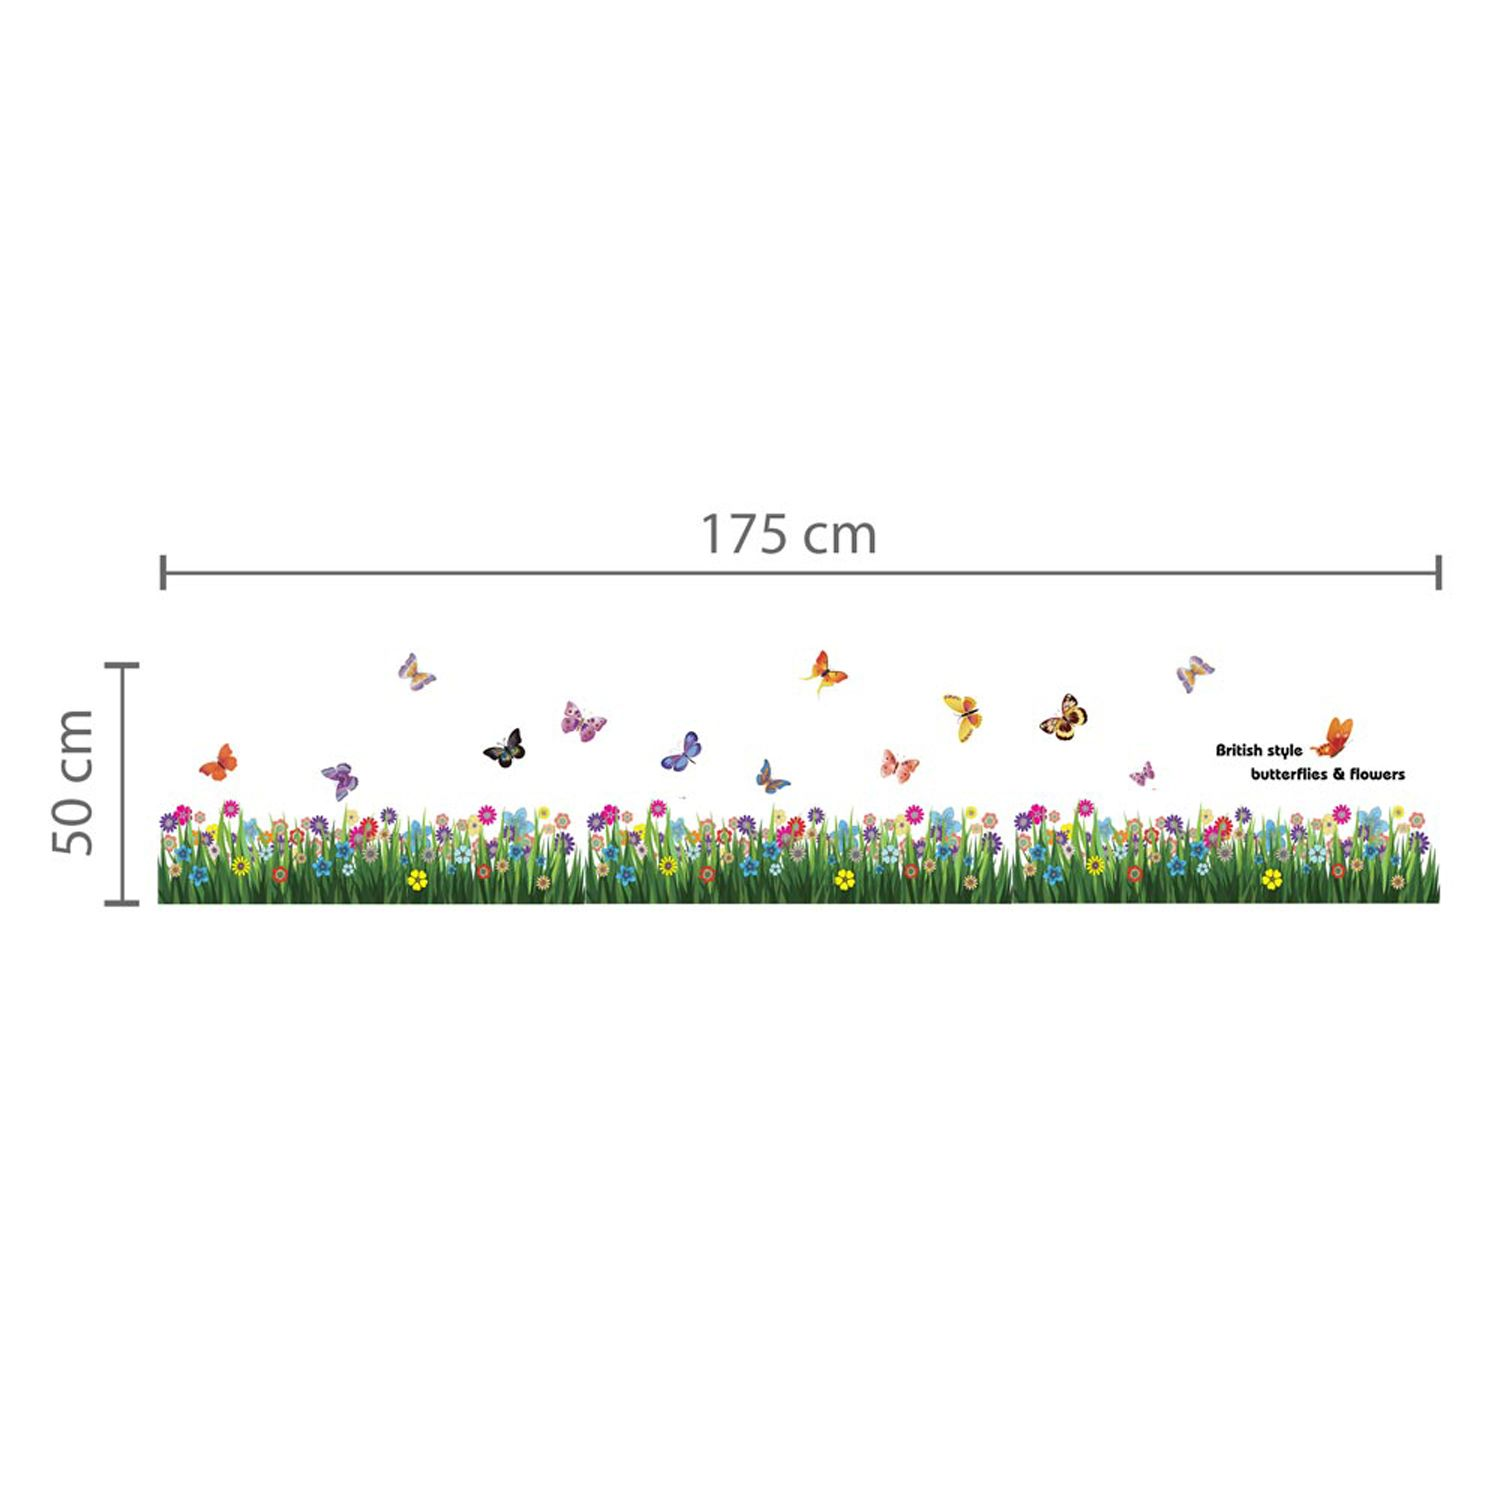 Walplus Wall Sticker Butterfly Grass Skirting with Swarovski Crystals